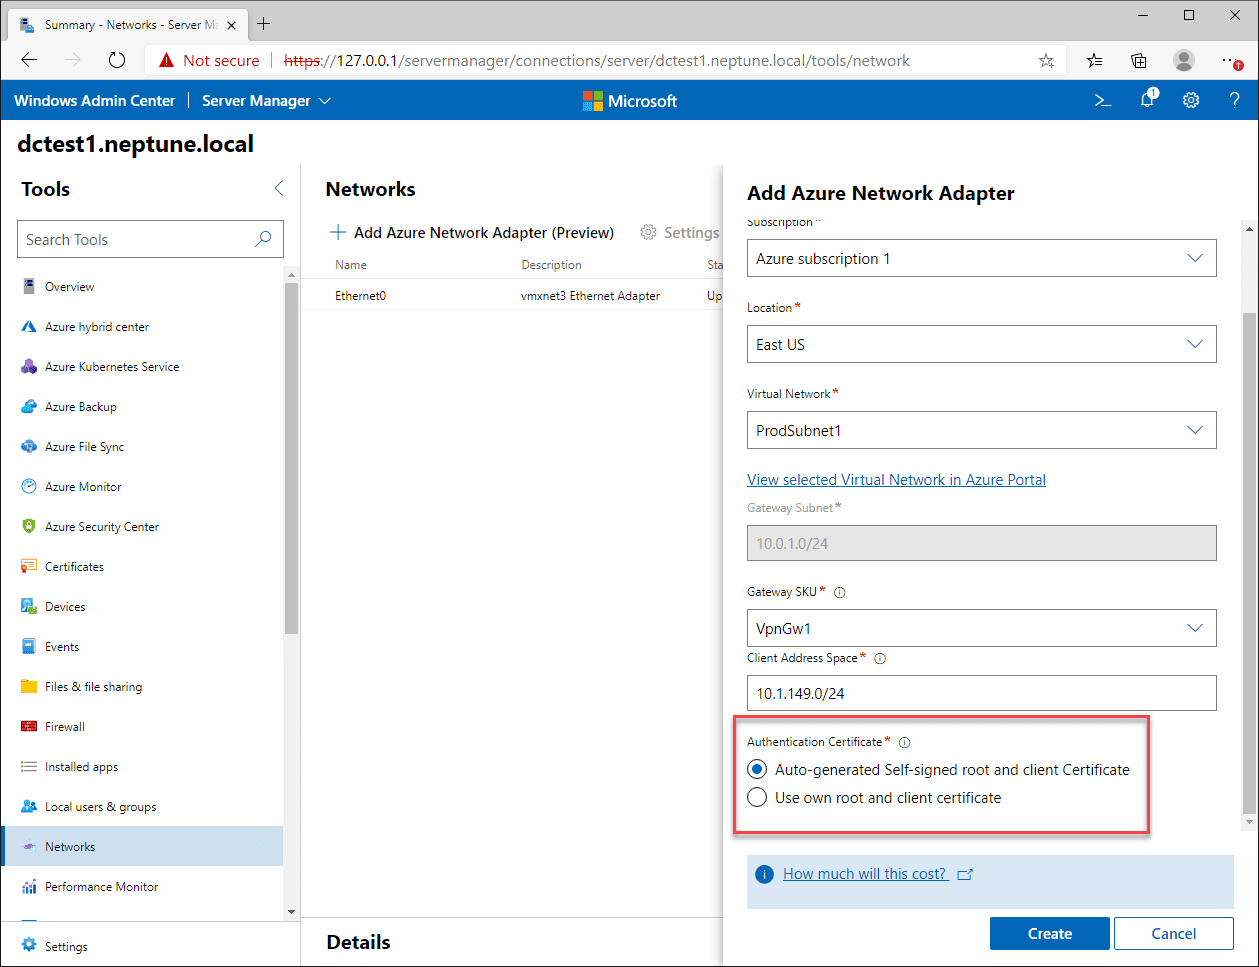 Certificate configuration is handled automatically